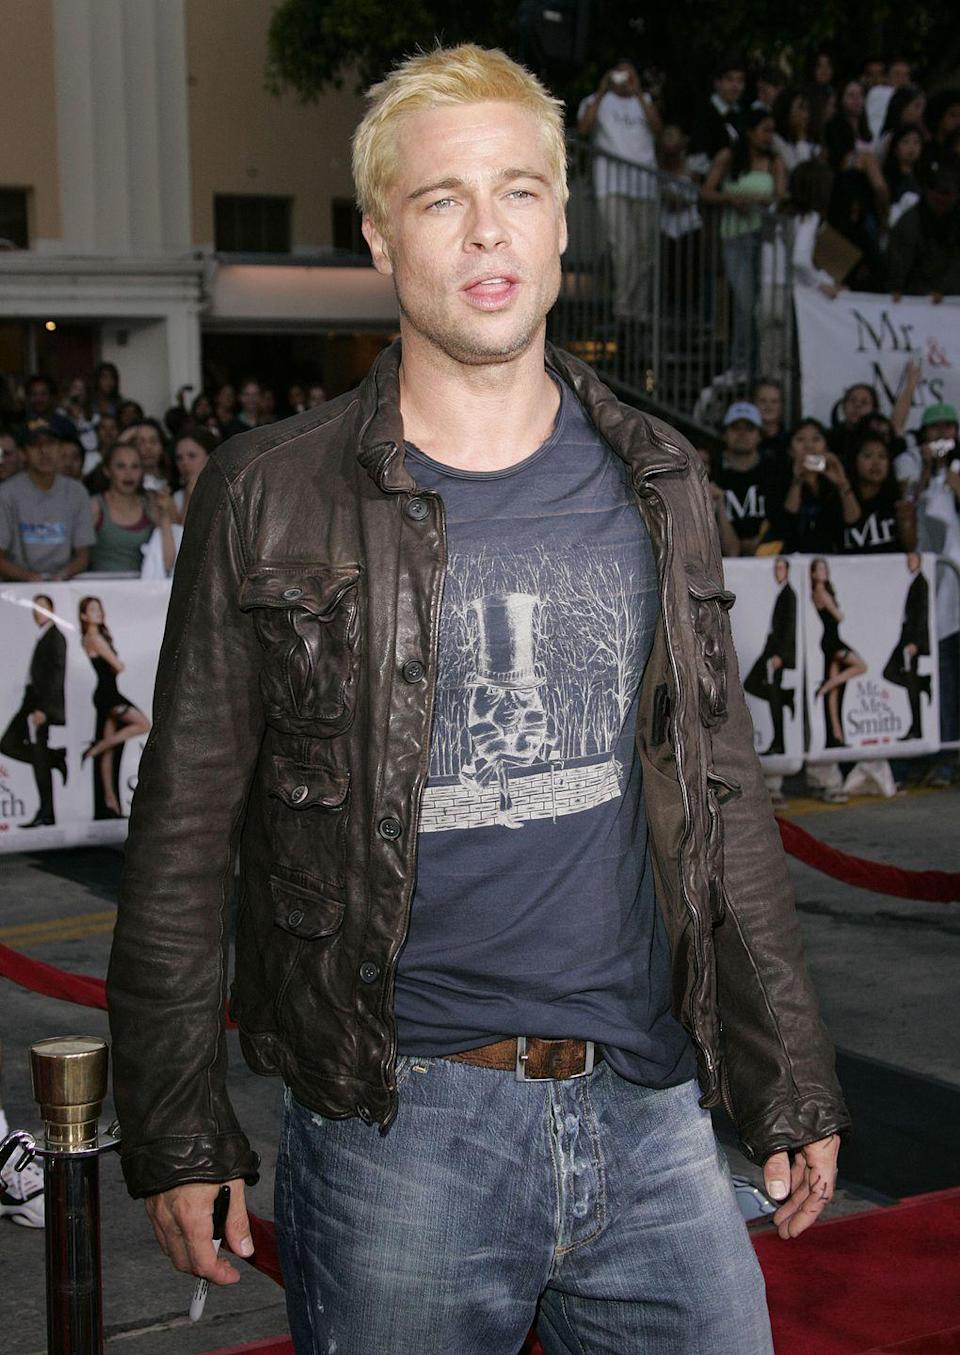 <p>Brad Pitt starred <em>Mr. & Mrs. Smith</em> in 2005. Although the reviews for the film weren't great, the actor delivered drama on-screen and off when after an affair with his costar, Angelina Jolie, caused him to split from Jennifer Aniston. </p>